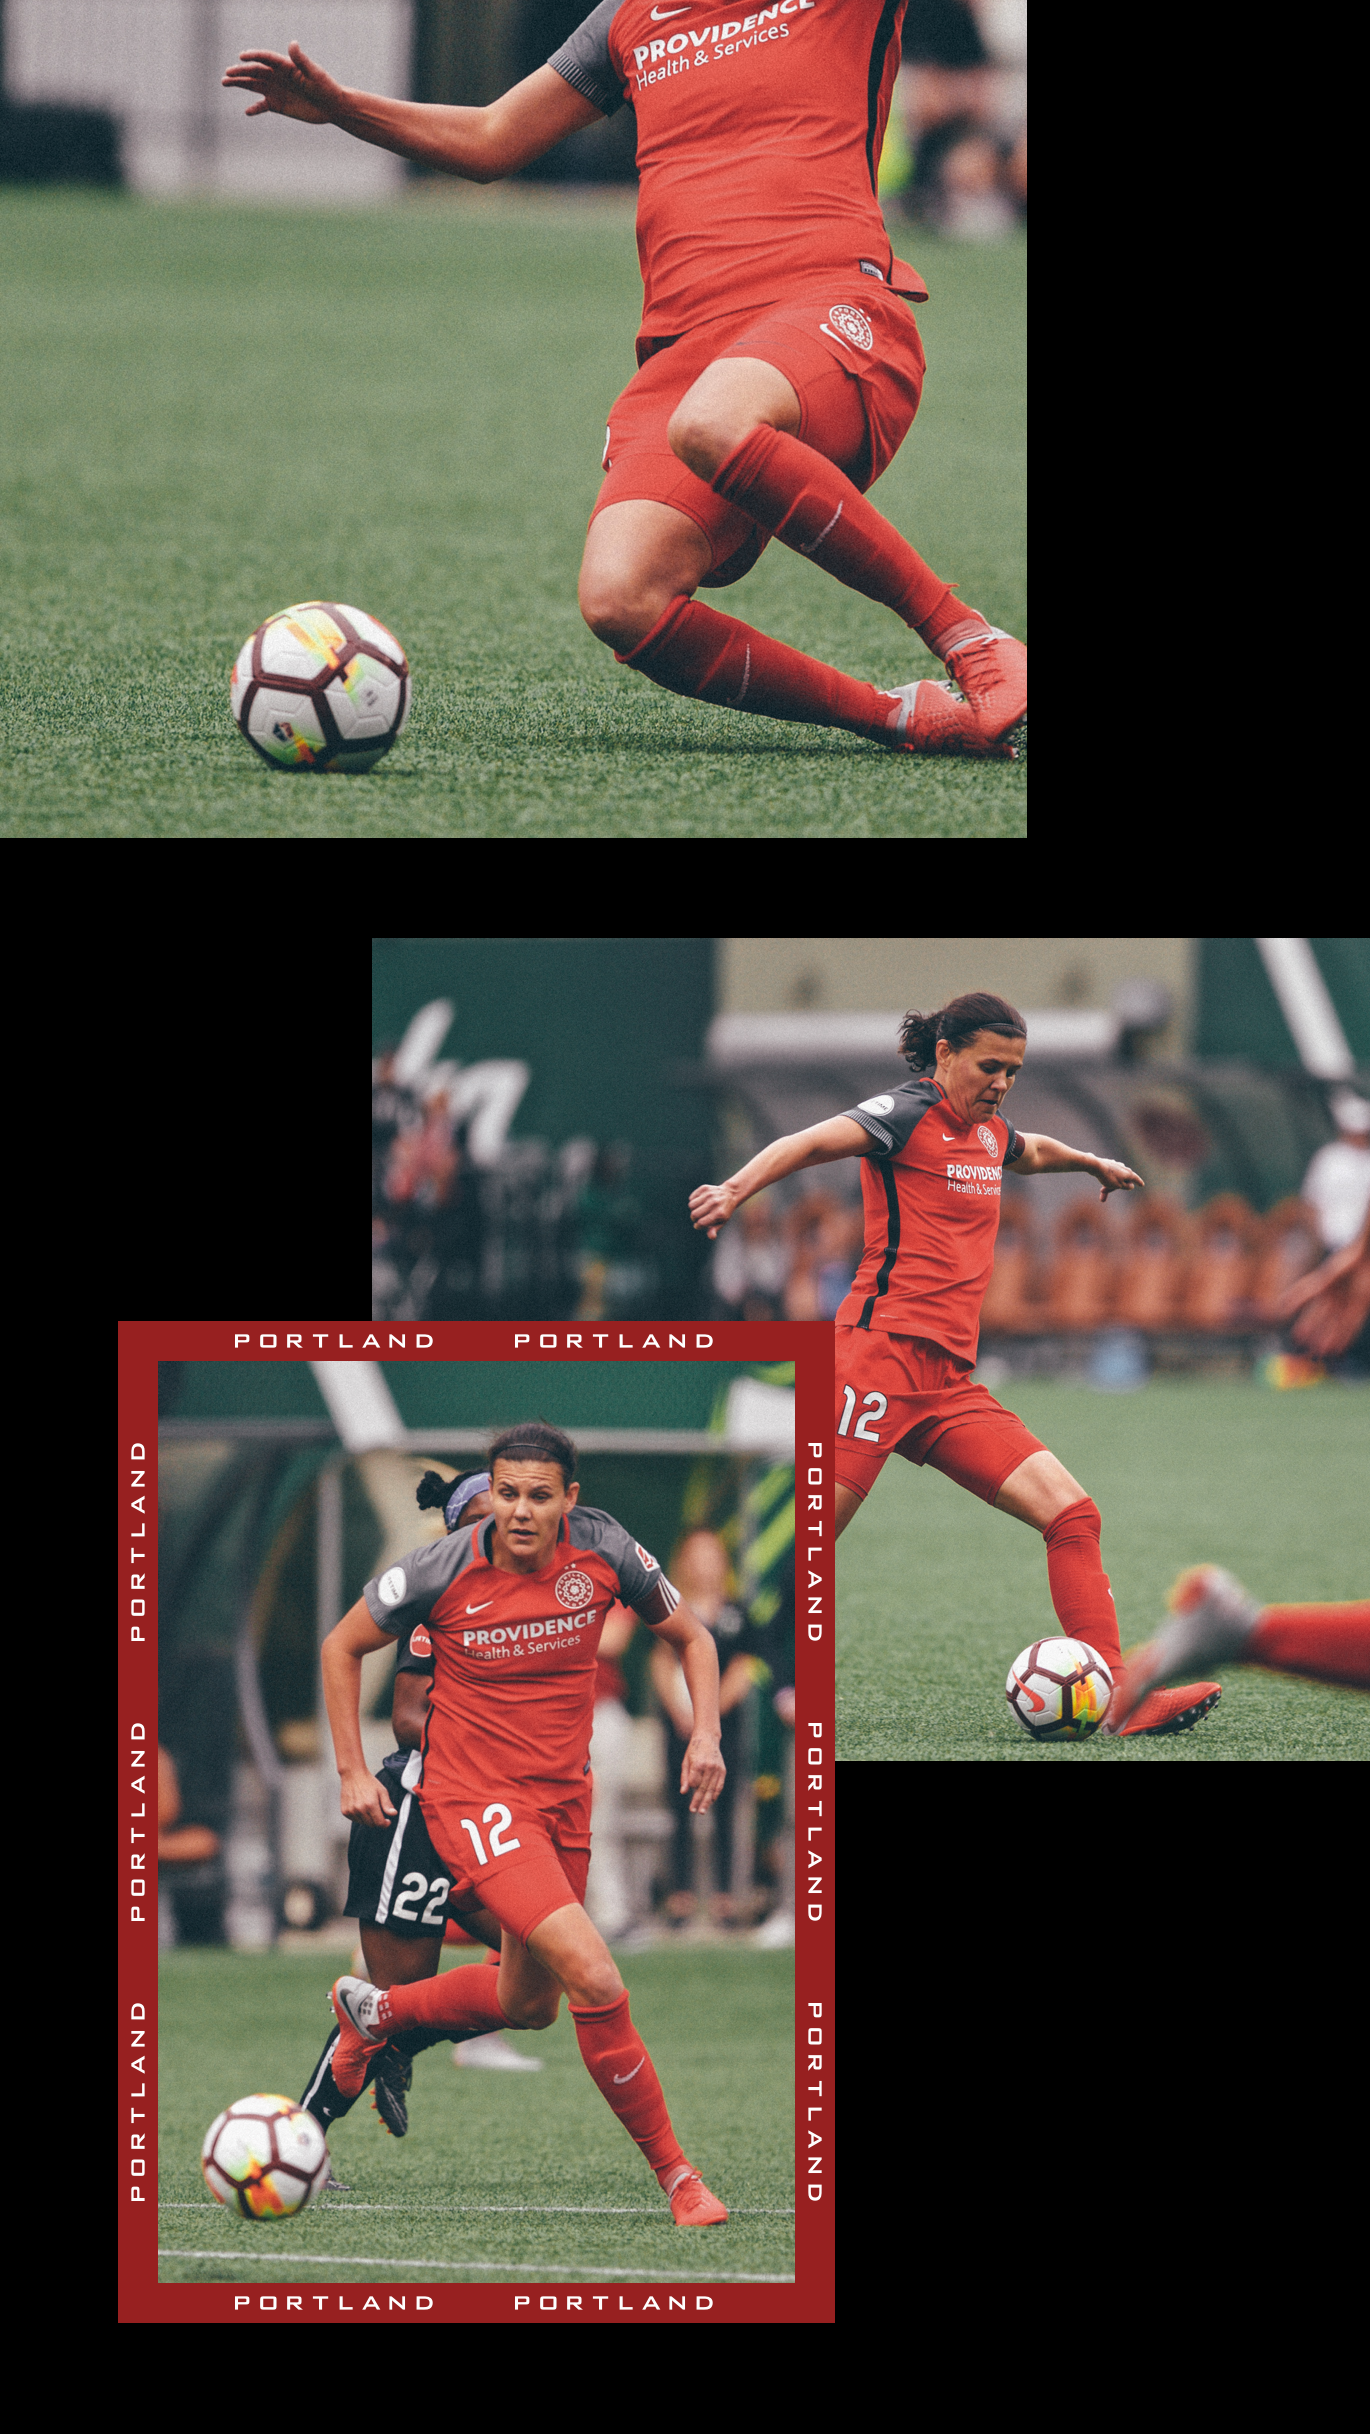 NIKE-NWSL-IG-STORY-07.png